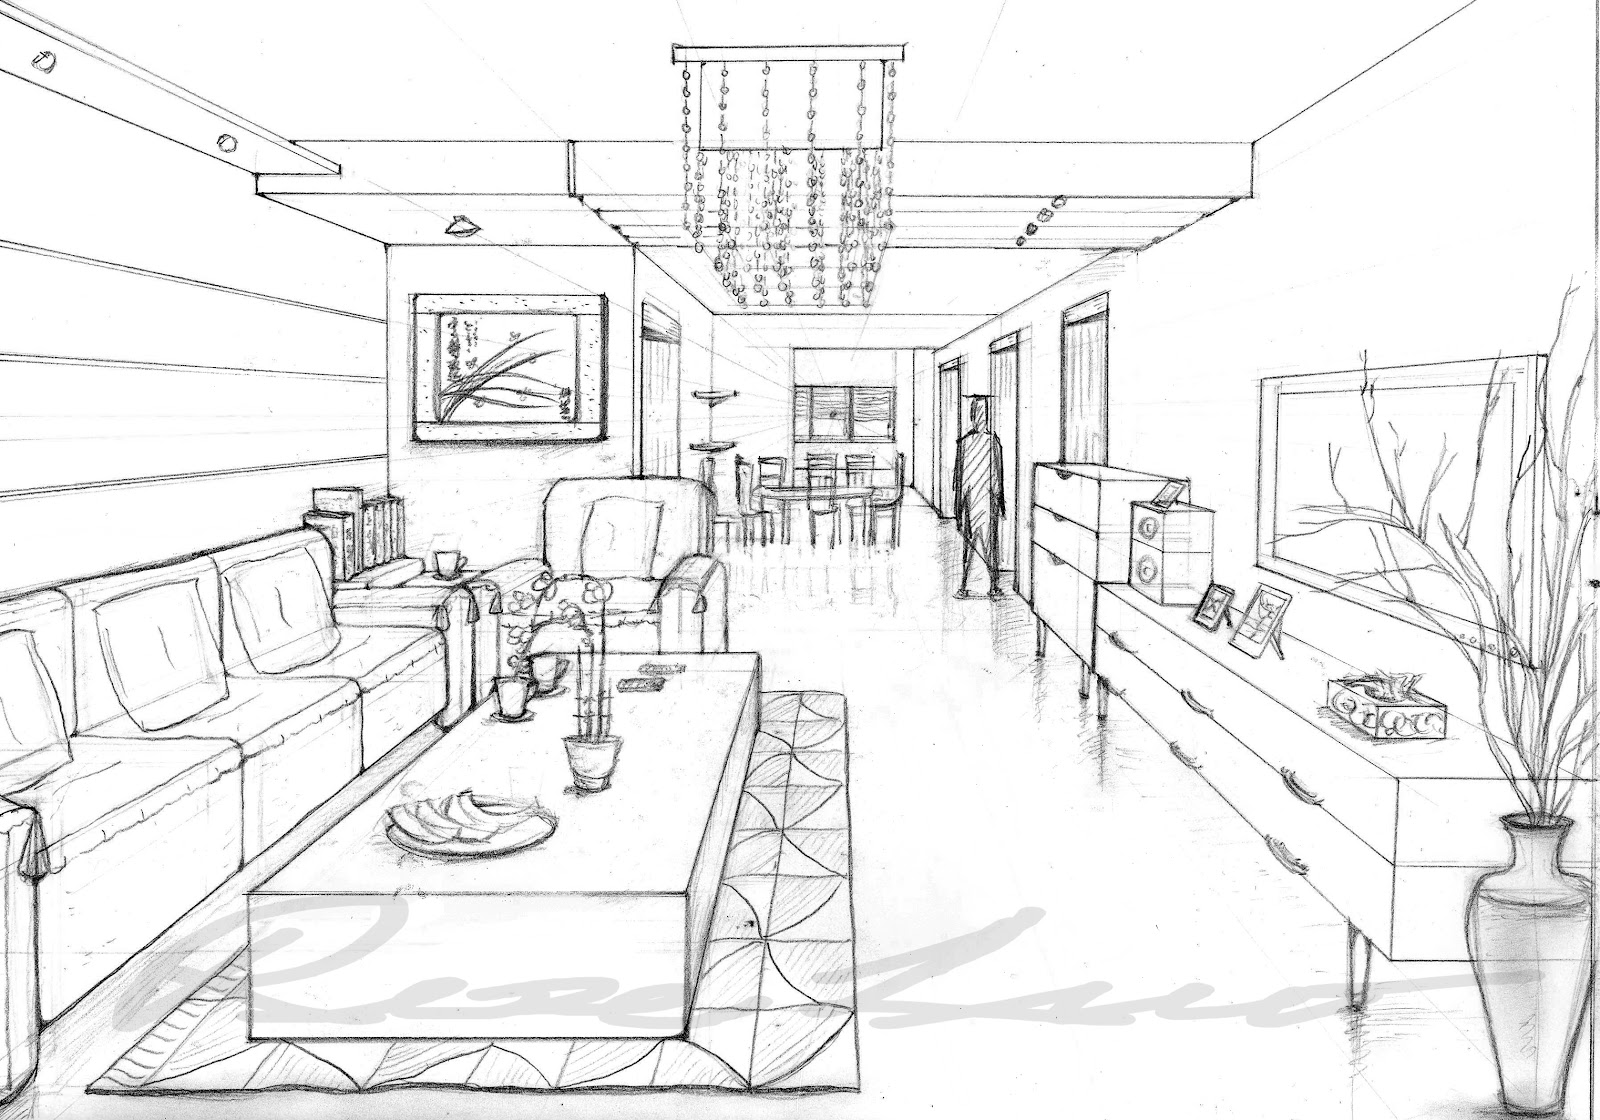 Rose rong luo 39 s production blog 1 point perspective and for Exterior 1 point perspective